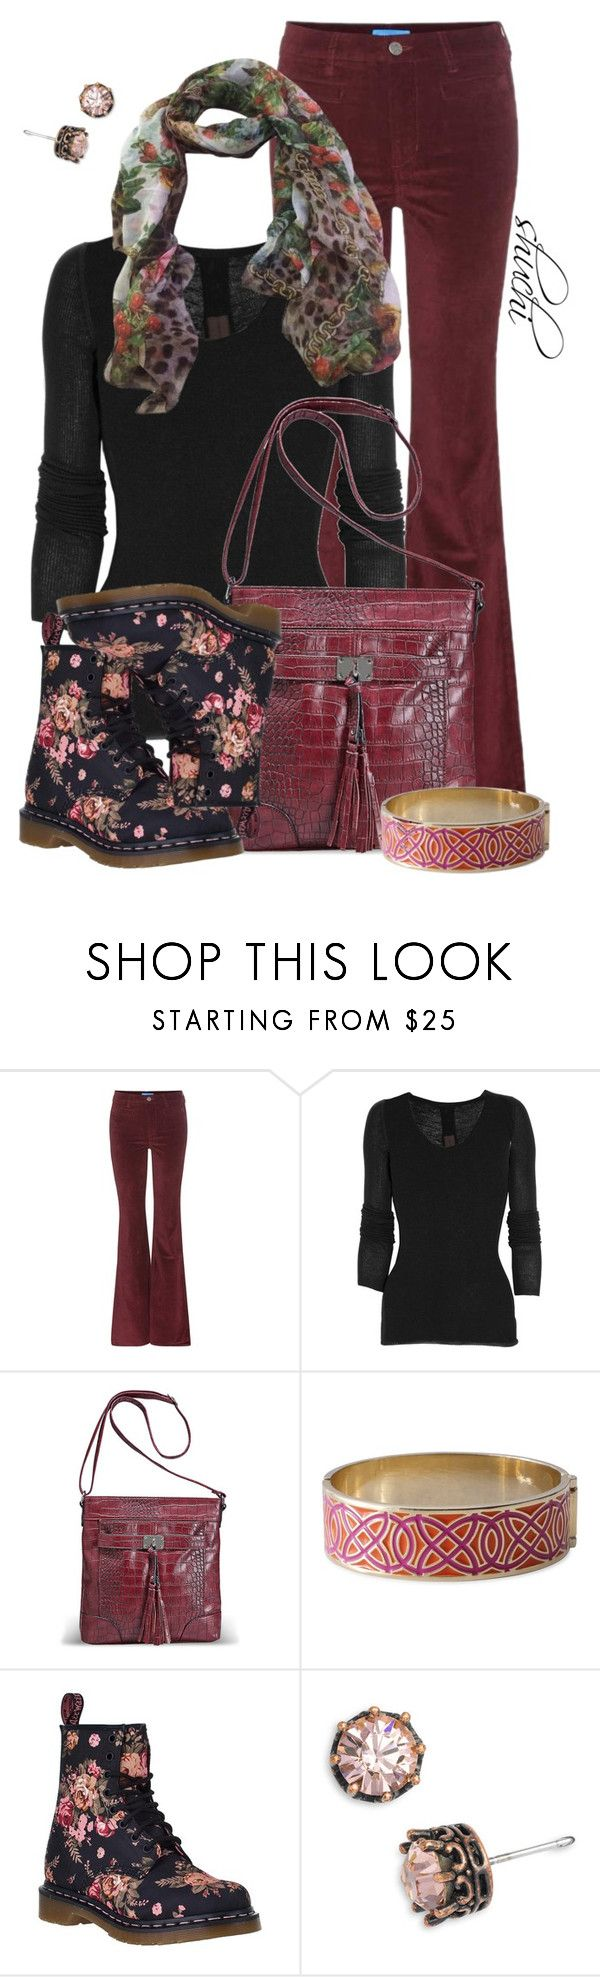 """""""Velvet in Vogue"""" by shuchiu ❤ liked on Polyvore featuring M.i.h Jeans, Rick Owens, Avenue, Stella & Dot, Dr. Martens, Juicy Couture, Dolce&Gabbana, velvet and dakflorals"""